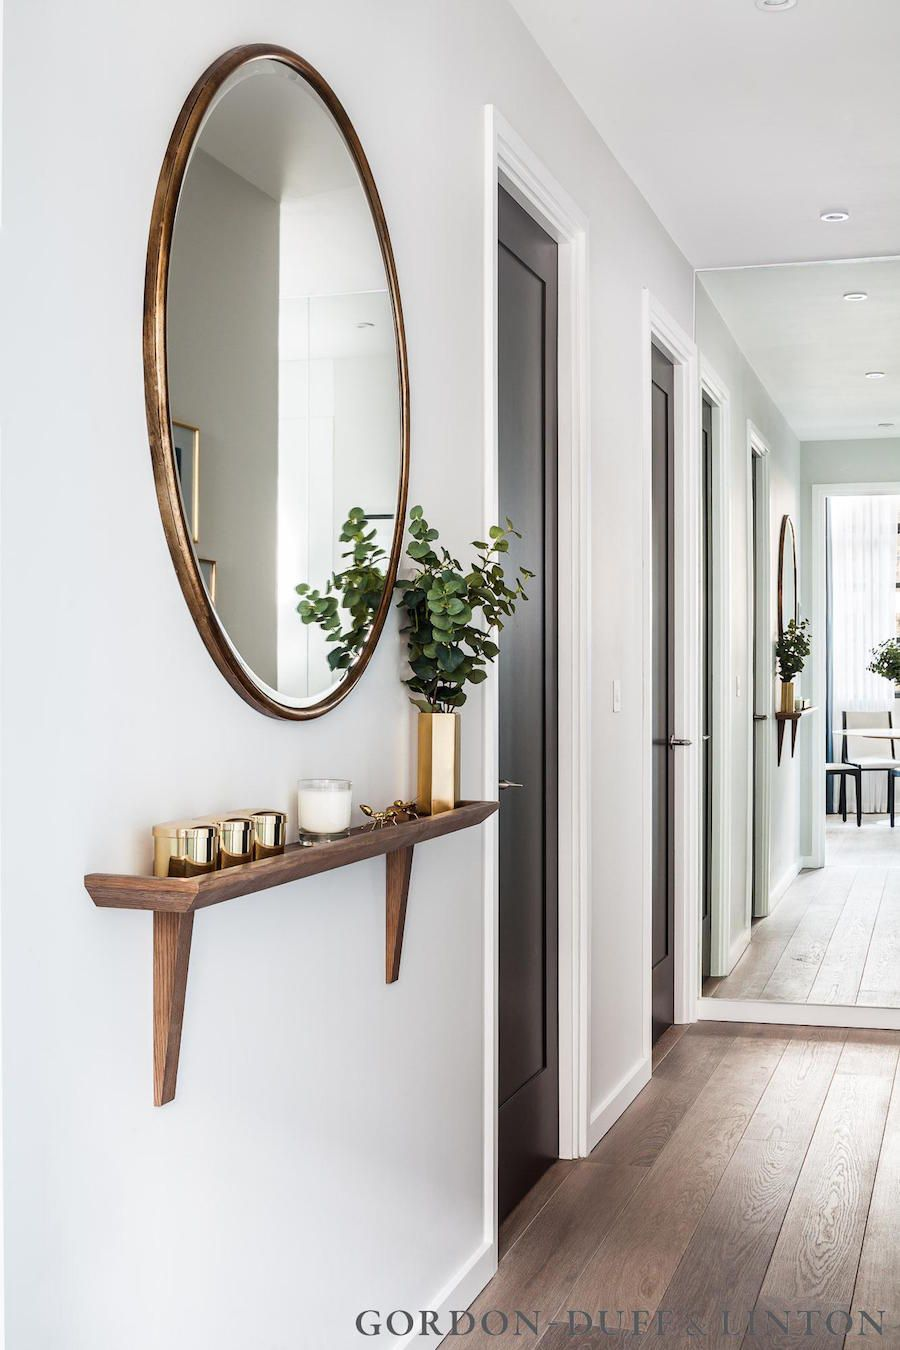 30 Of The Most Pretty Practical Entryways Narrow Hallway Decorating Hallway Decorating Foyer Decorating